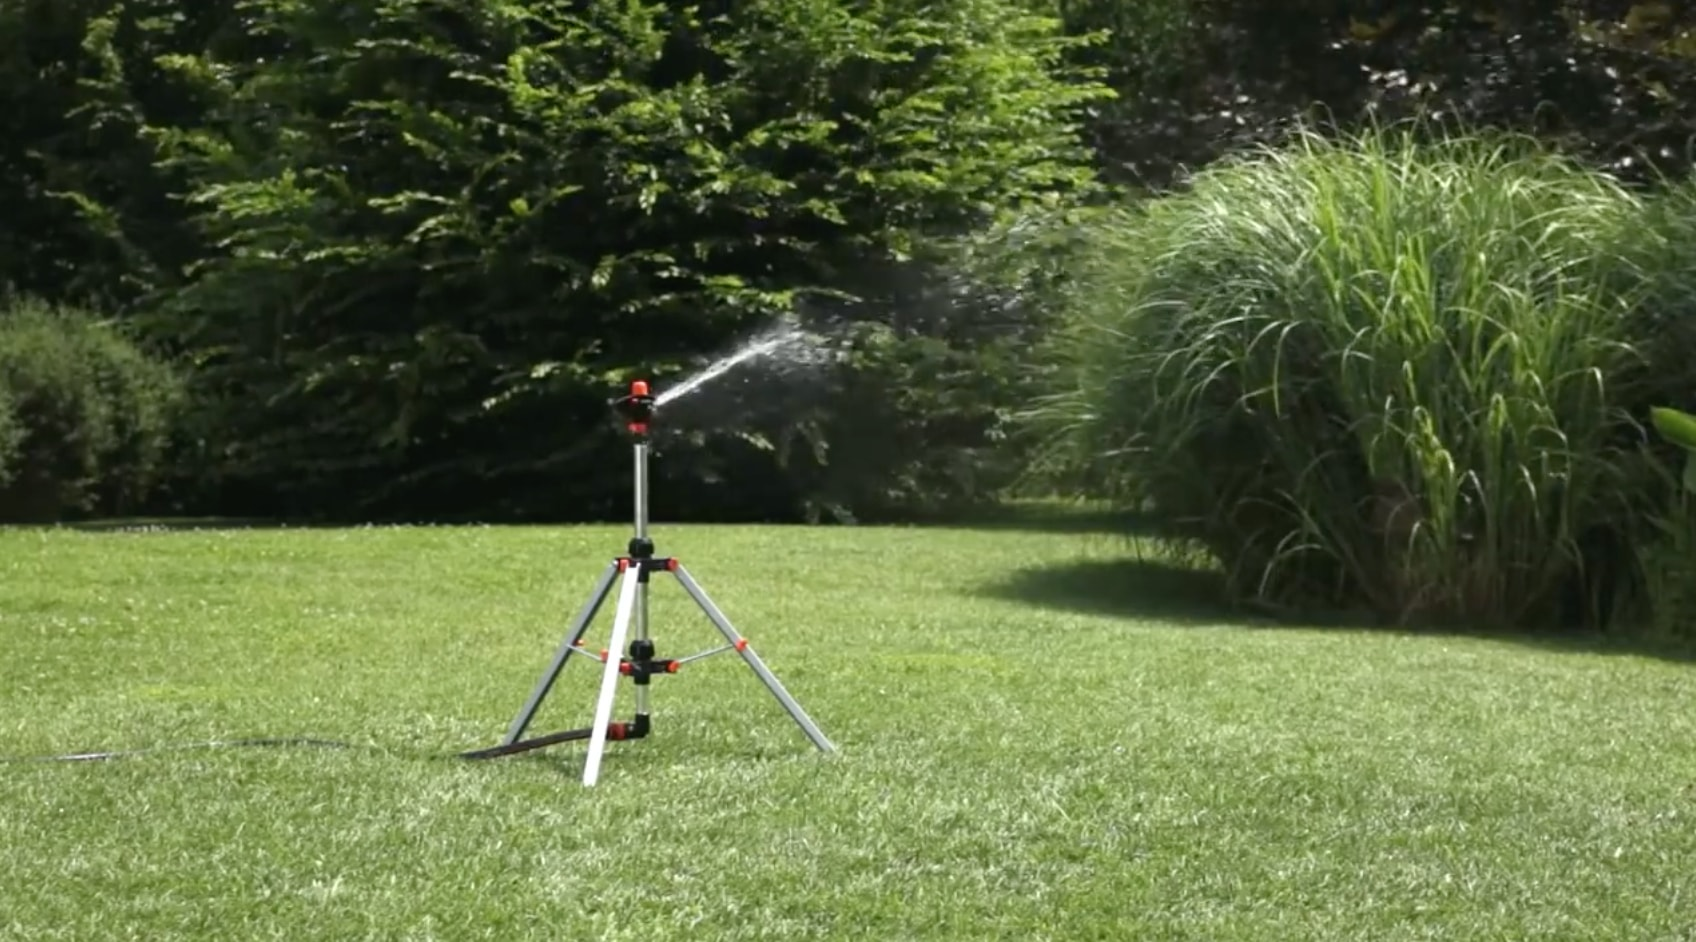 How To Setup And Use A Tripod Lawn Sprinkler Tripodyssey